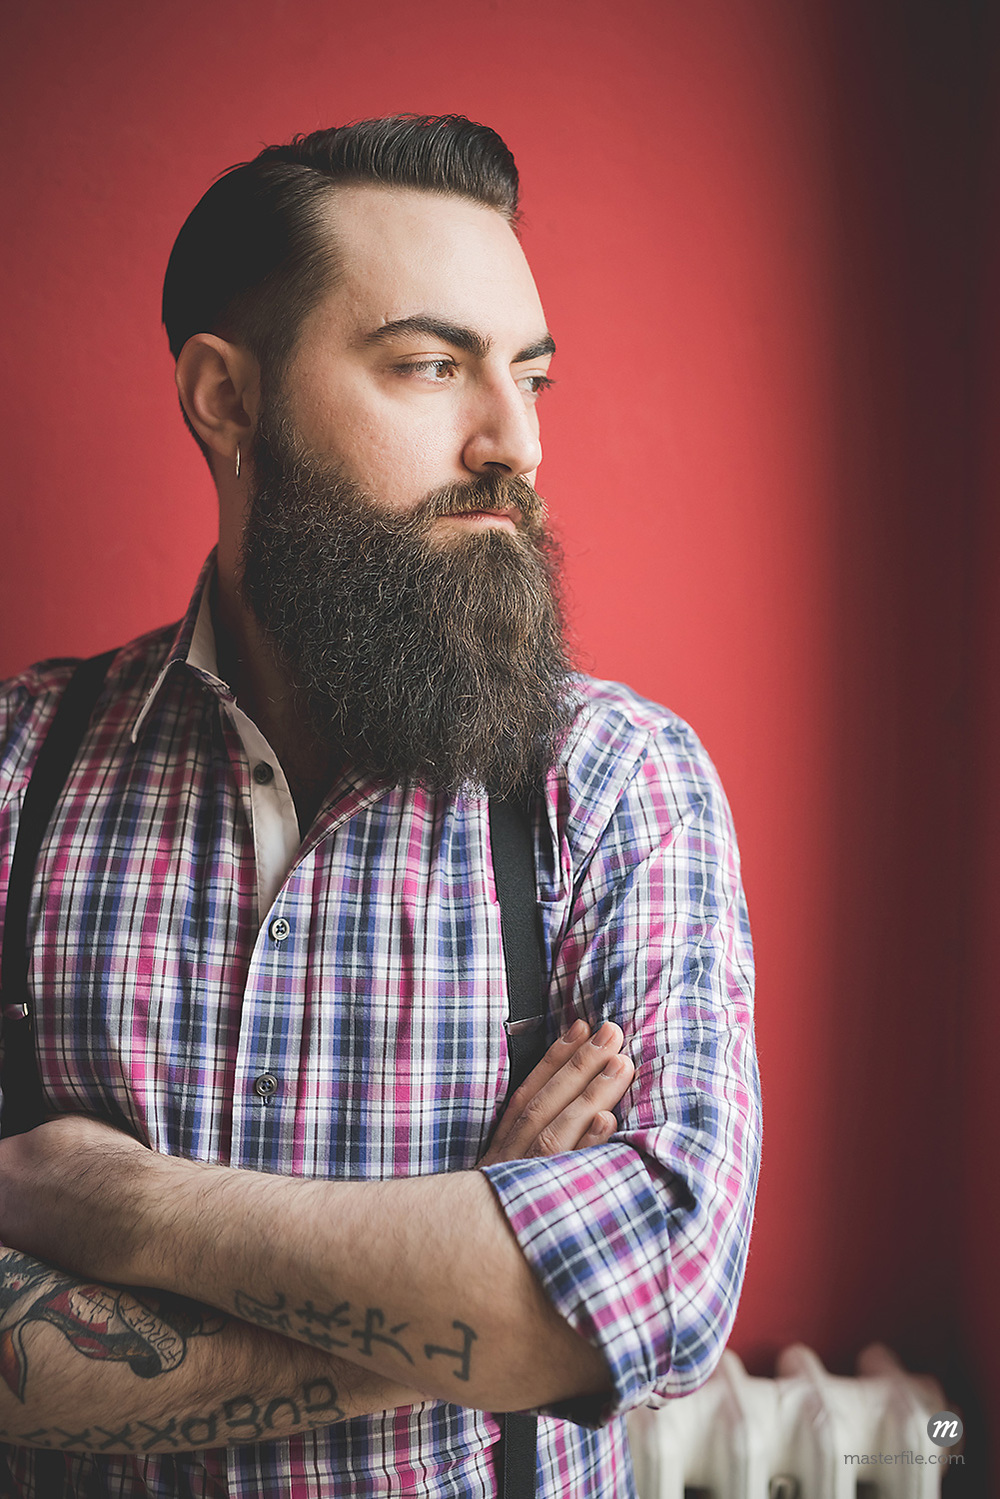 Portrait of young bearded man wearing plaid shirt and suspenders © Masterfile